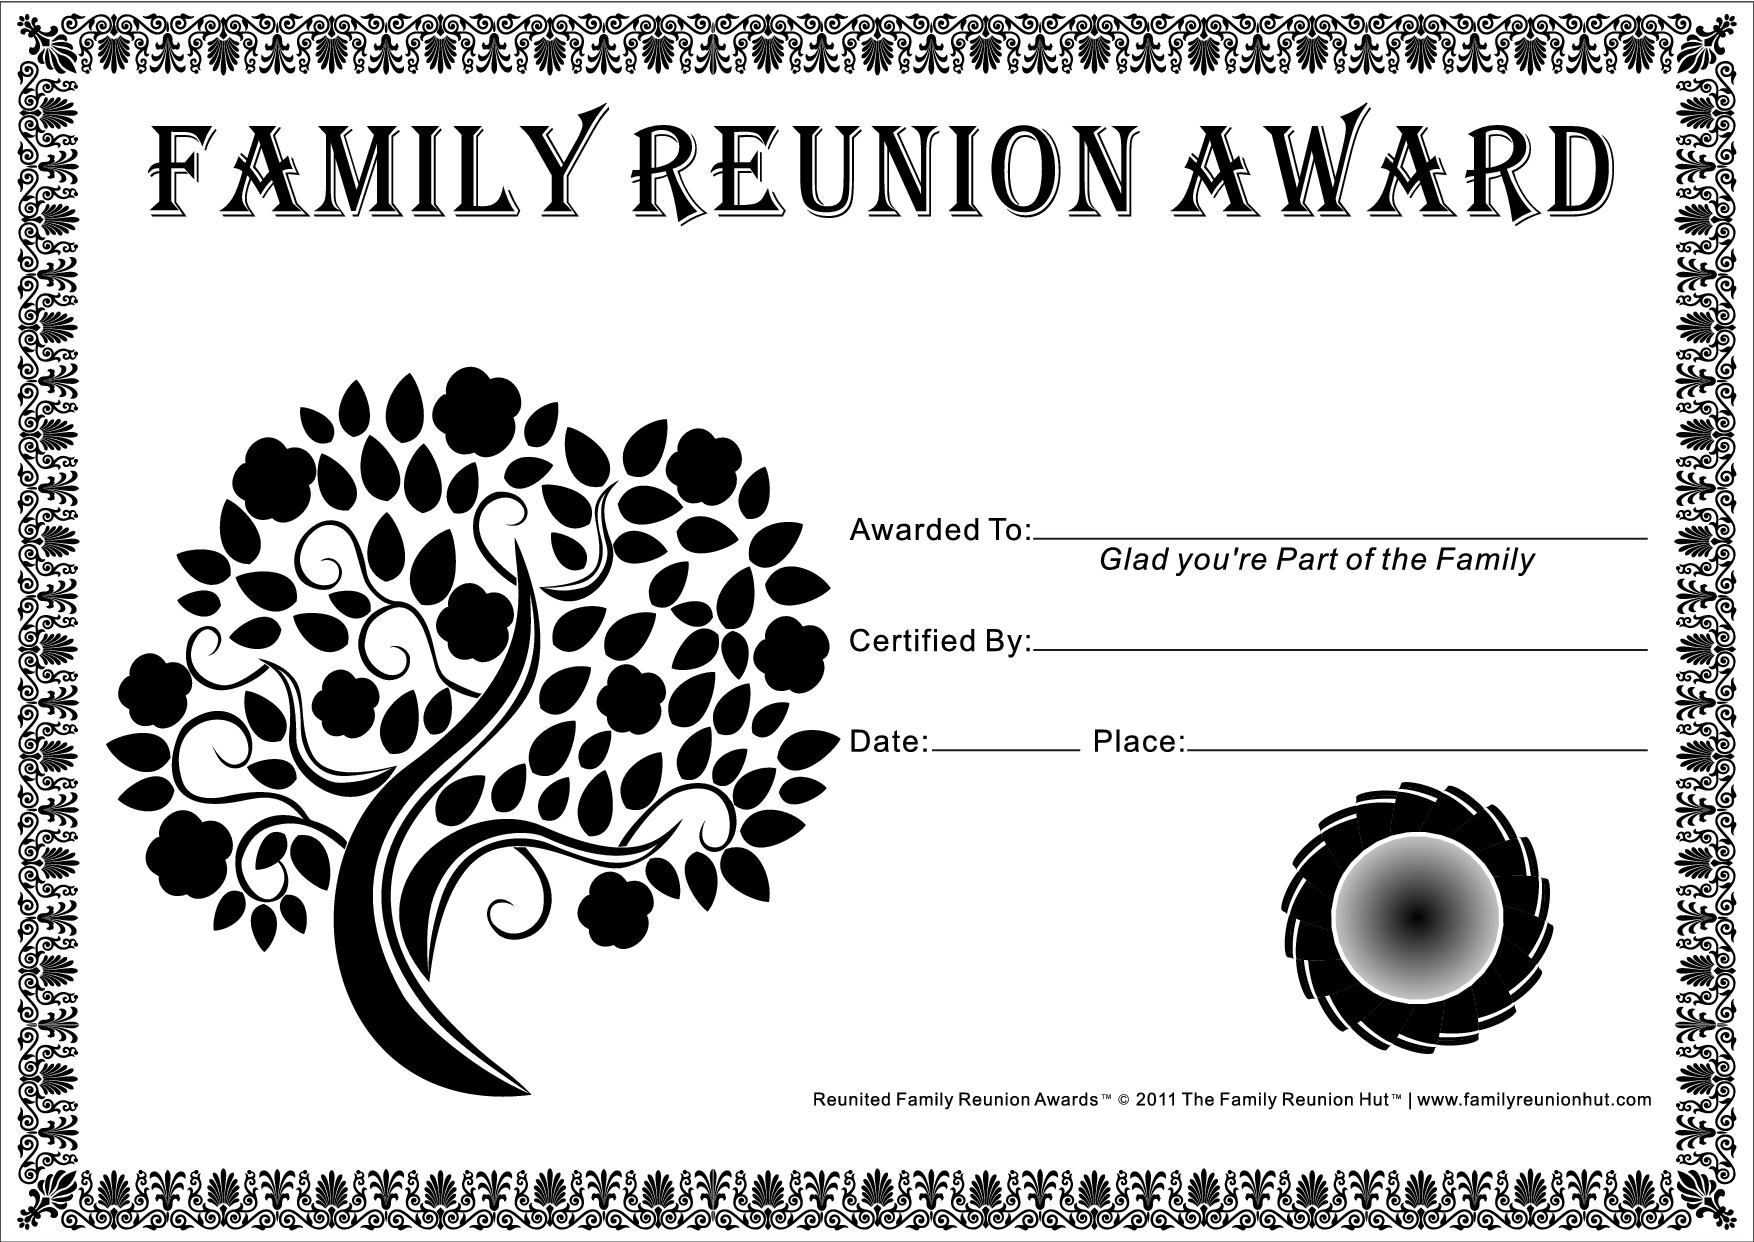 Pin by kevin smith on shirt idea pinterest family reunions family reunion certificates tree in bloom 26 is a free family reunion award by the family reunion hut by eastgeneral thecheapjerseys Image collections